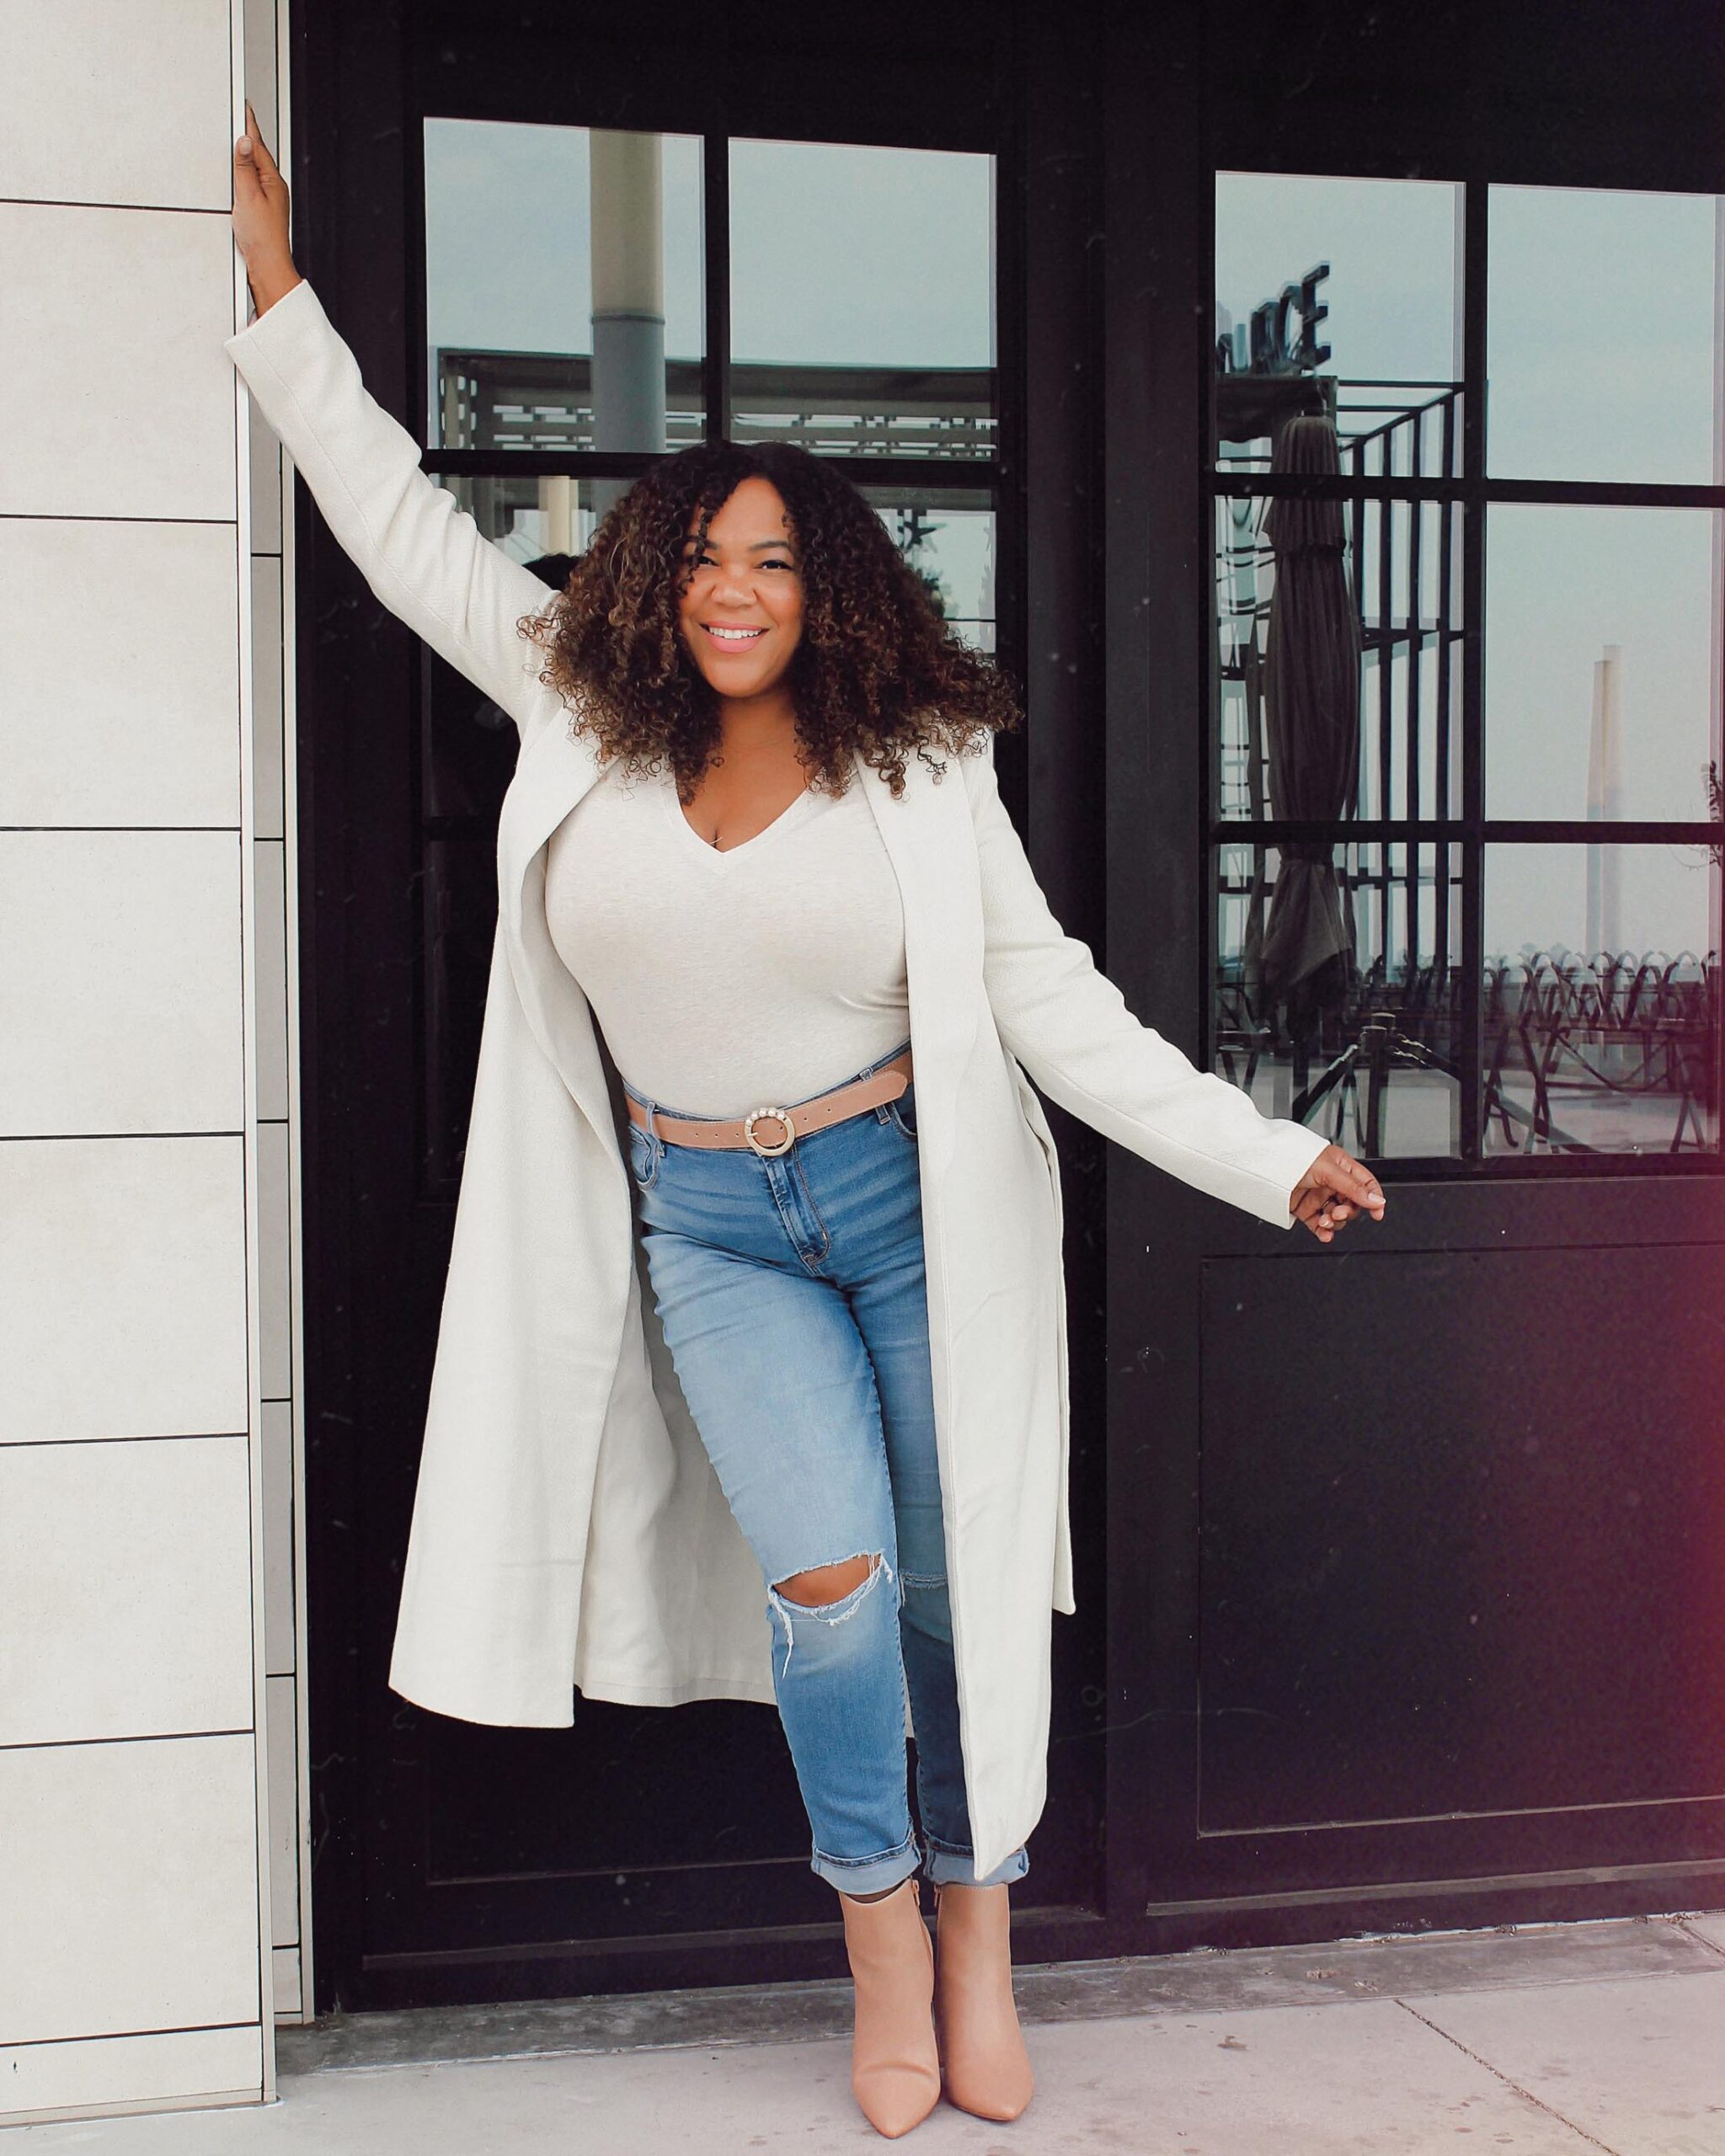 Dr. Vivian Rodriguez is a bilingual Dominican American whose blog covers topics ranging from fashion & lifestyle, to content creation & mental health.